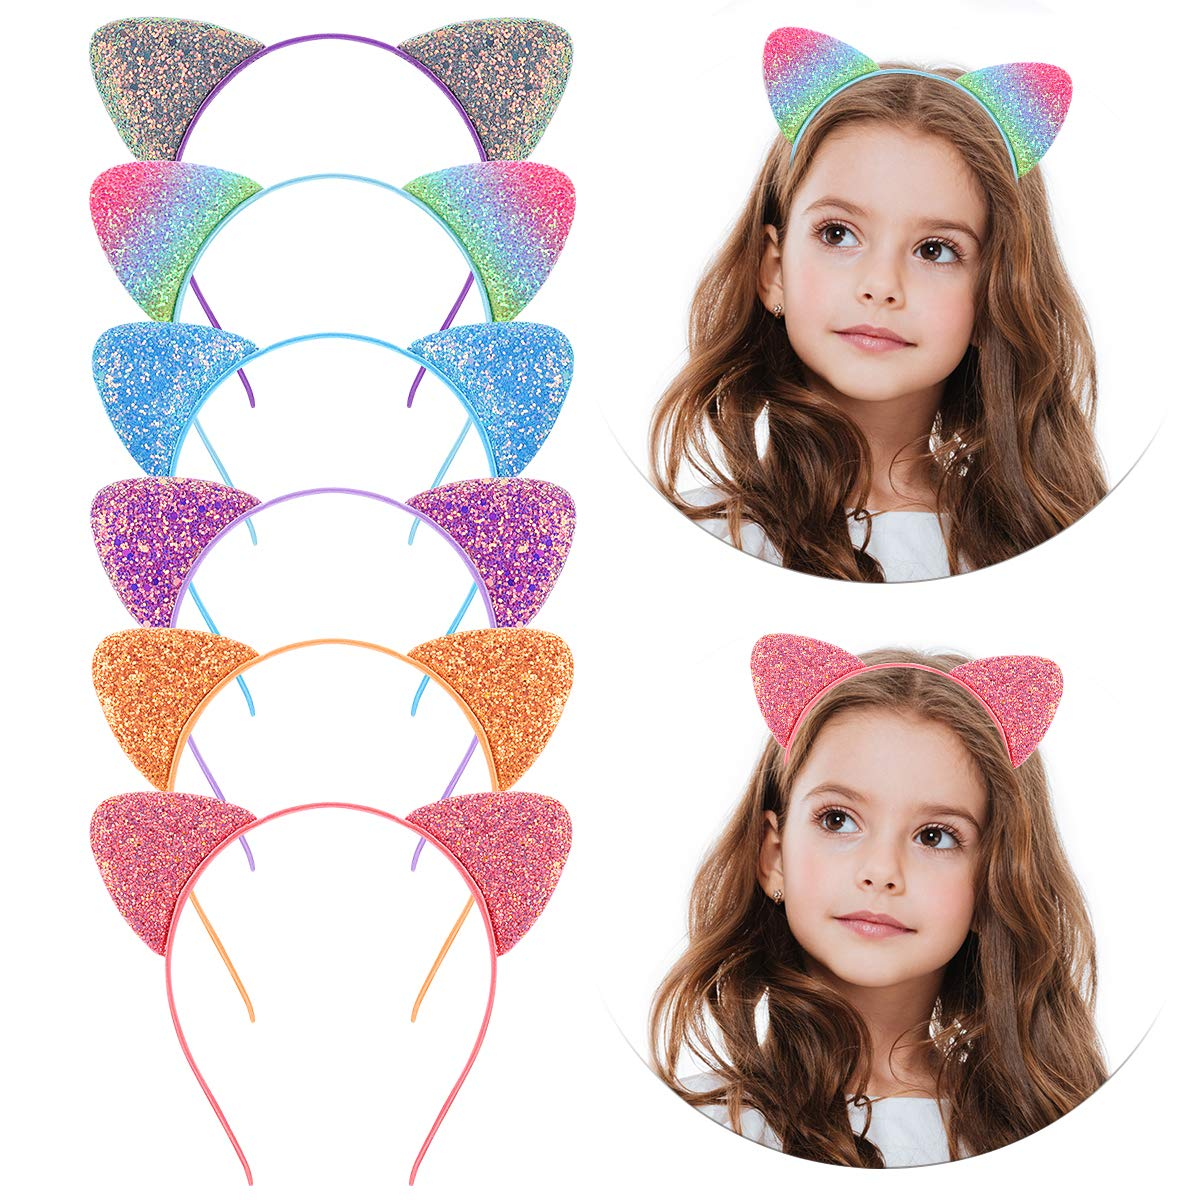 Cat Ears Headband, Glitter Sequin Ear Headbands Metal Hair Hoops for Daily Party, 12Pack